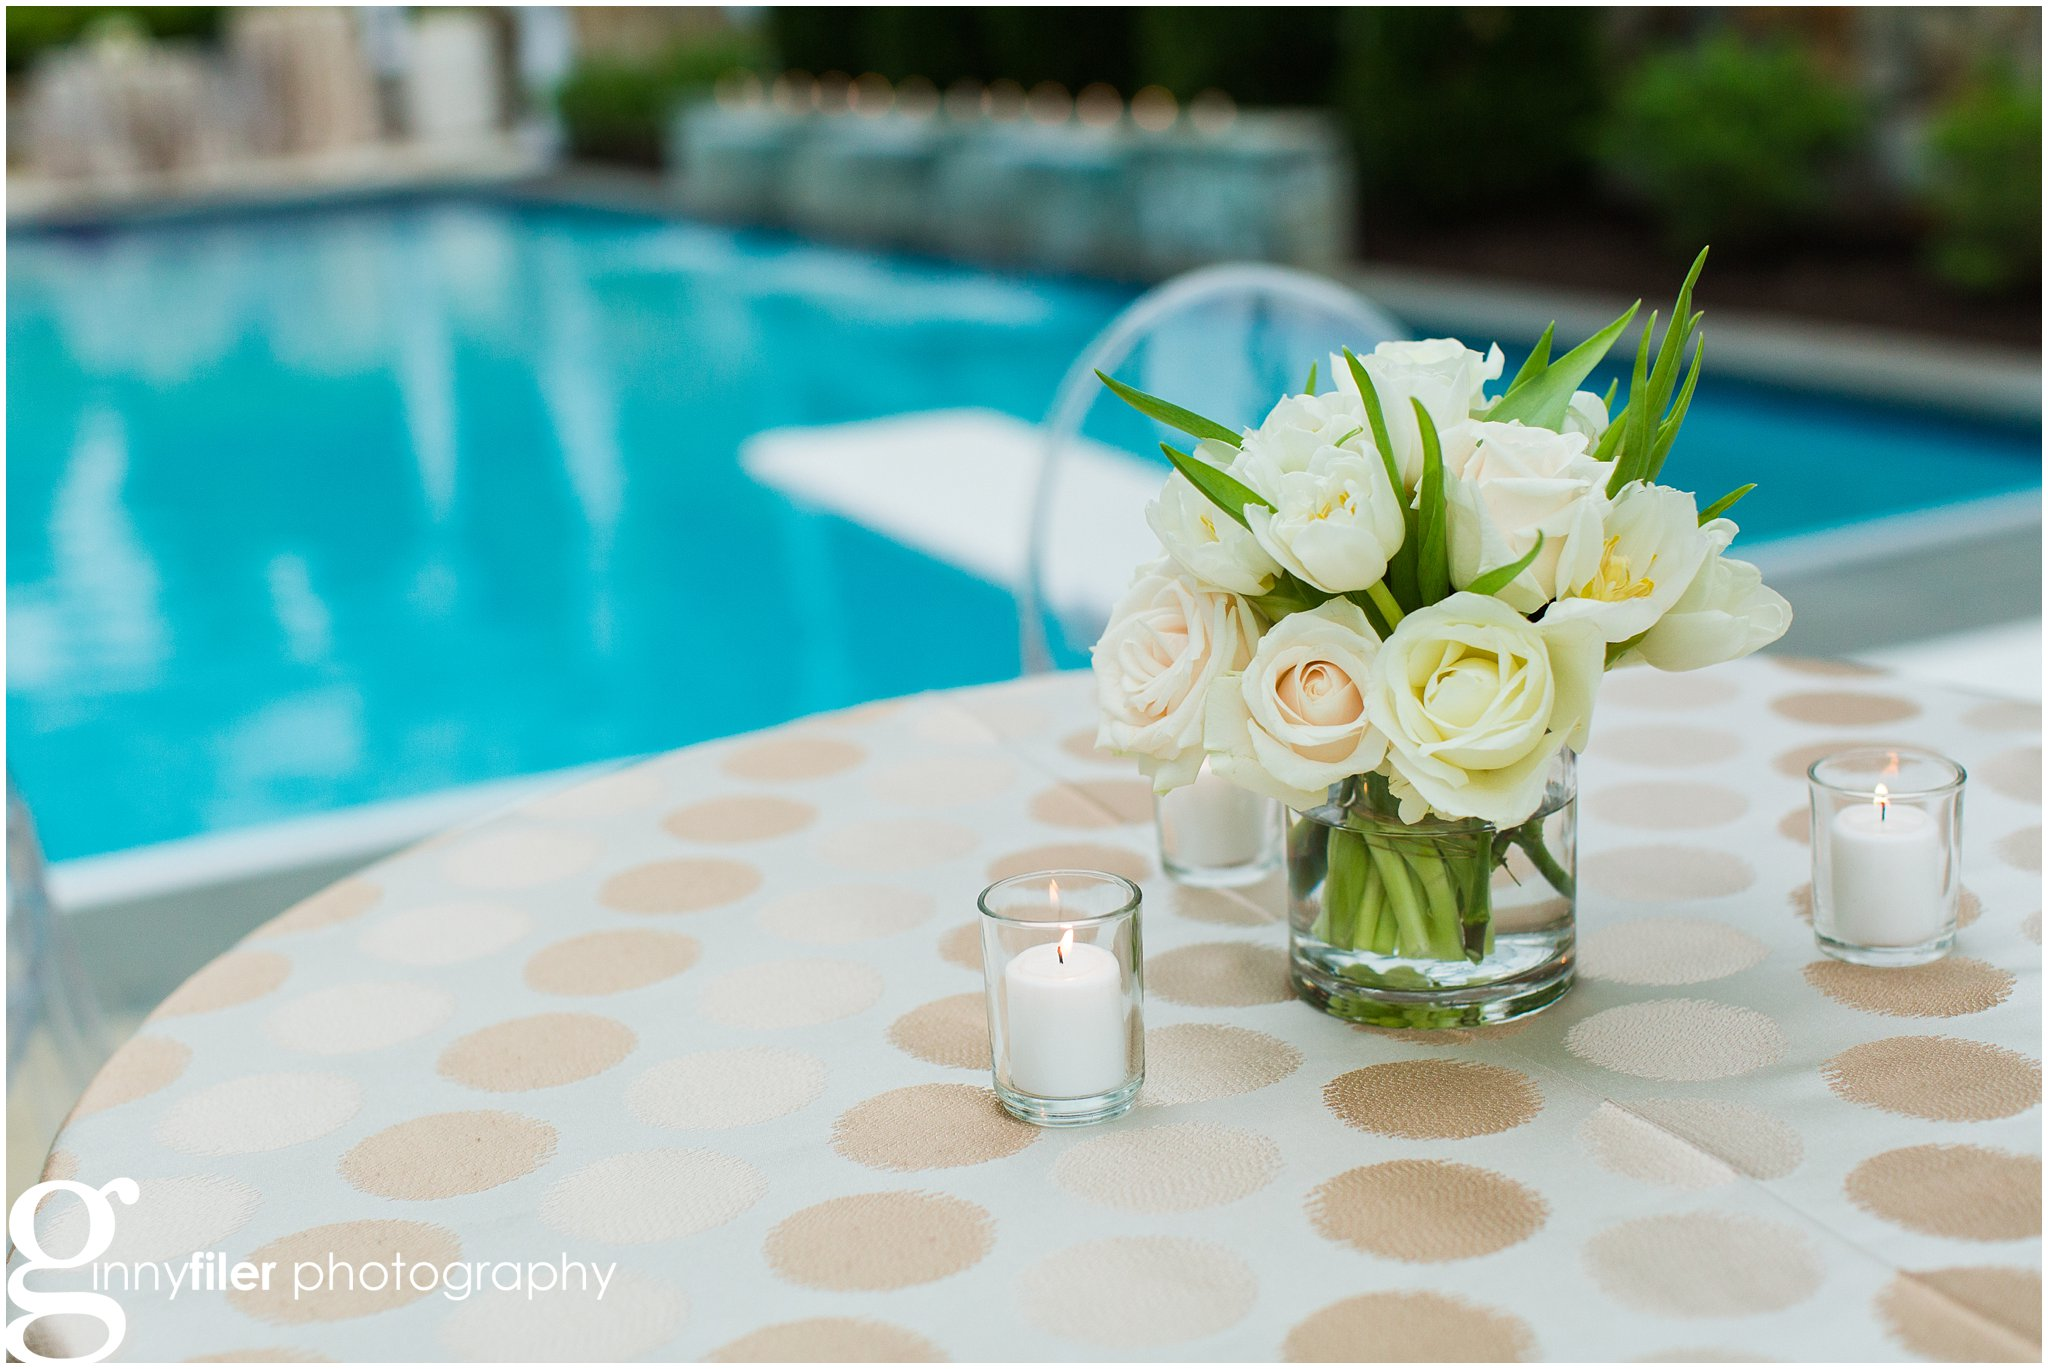 event_photography_party_0014.jpg